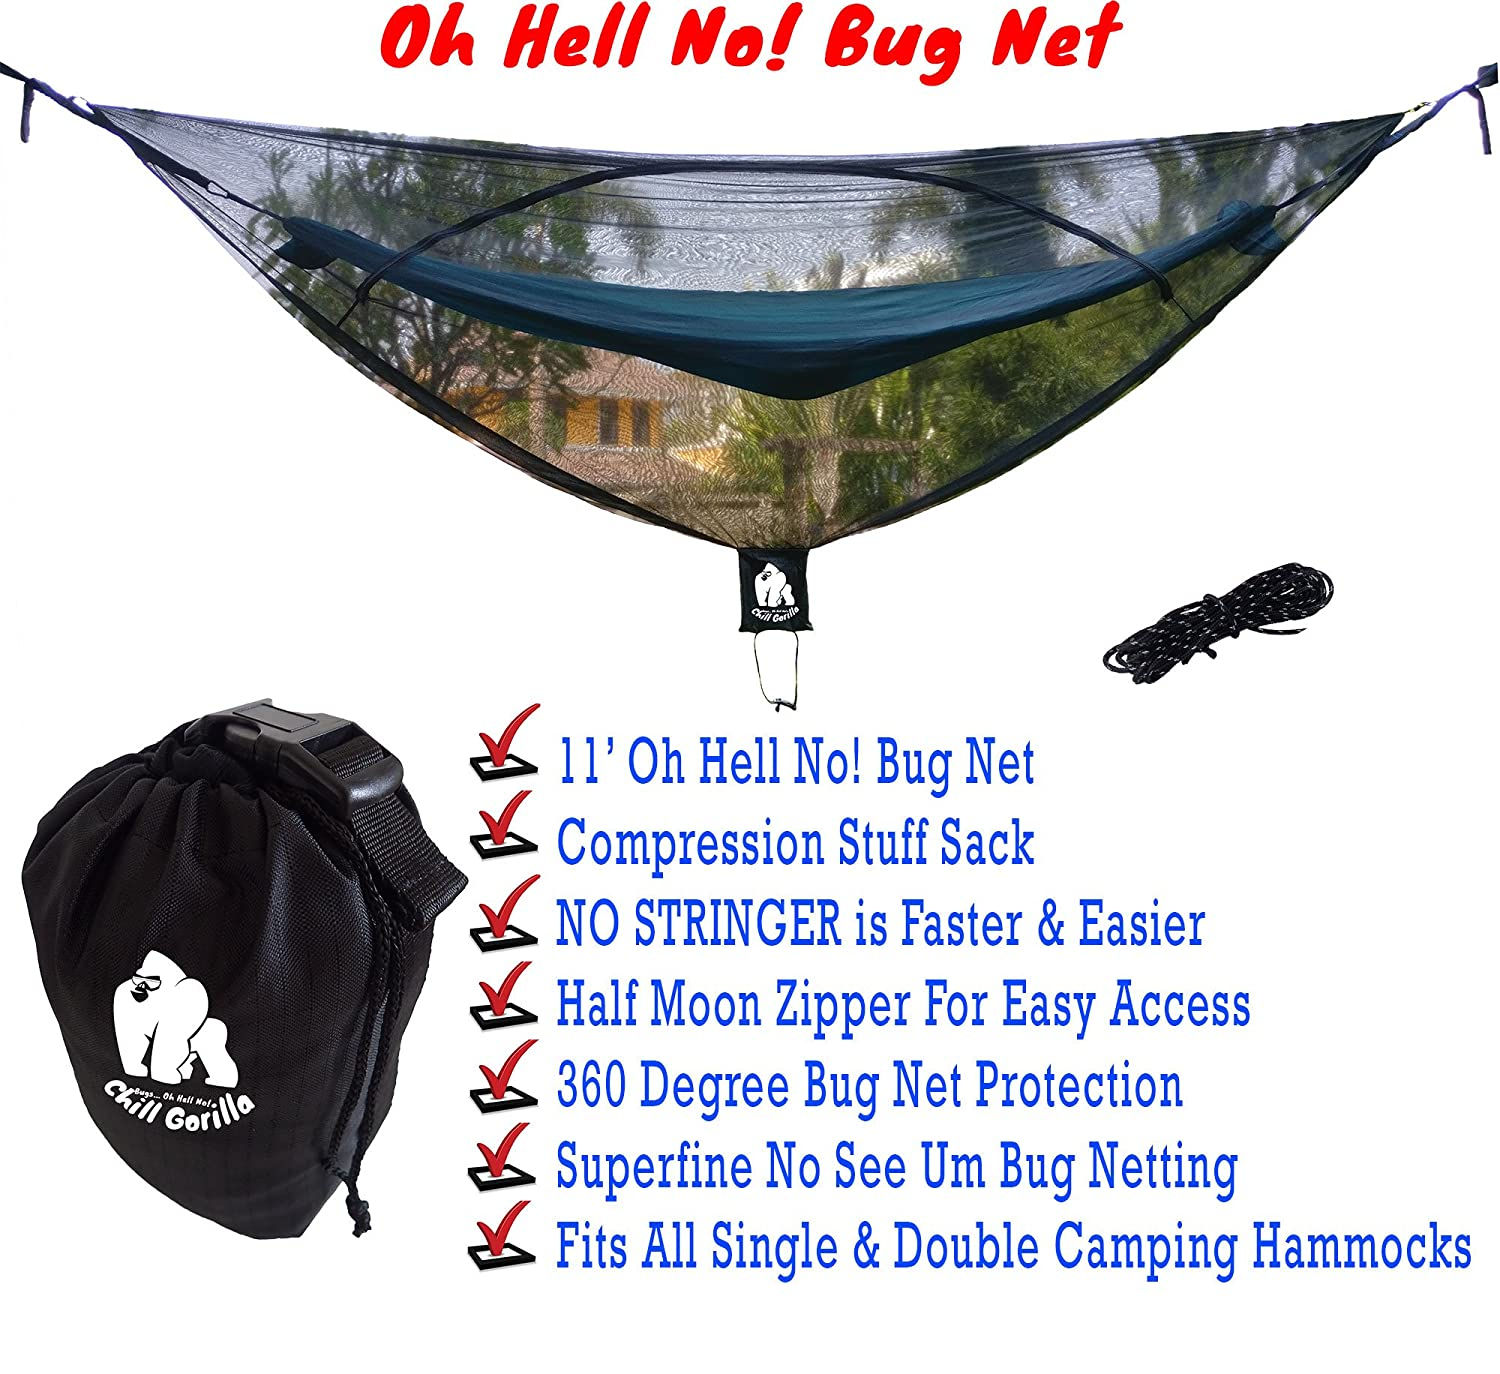 Medium image of 11 u0027 bug   stops mosquitoes no see ums  u0026 repels insects  fits all camping hammocks   pact lightweight  size 132   x 51    essential backpacking jungle